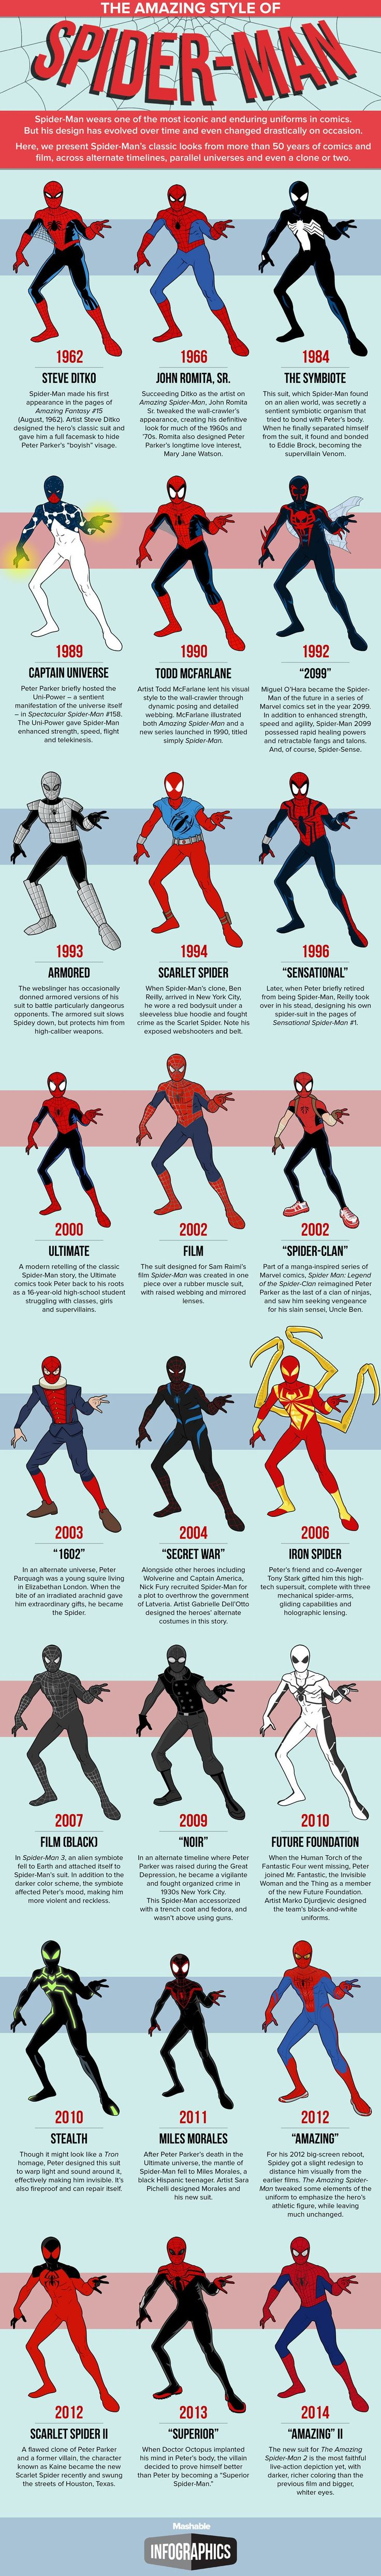 Awesome infographic about the evolution of the Spider-Man costume